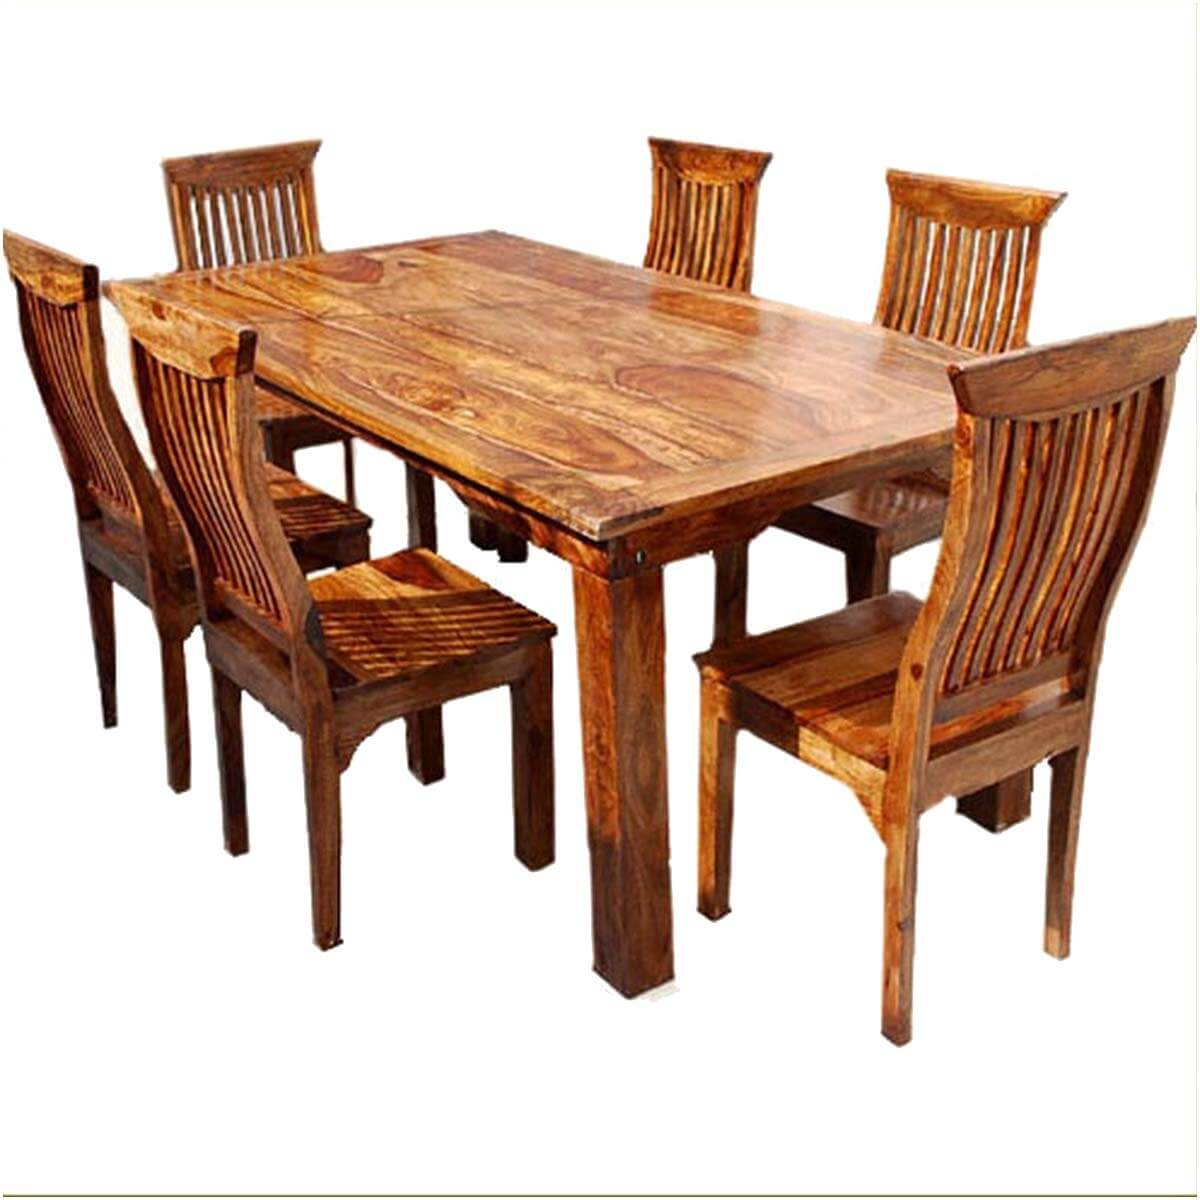 Dallas ranch solid wood rustic dining table chairs hutch set for Dining furniture design